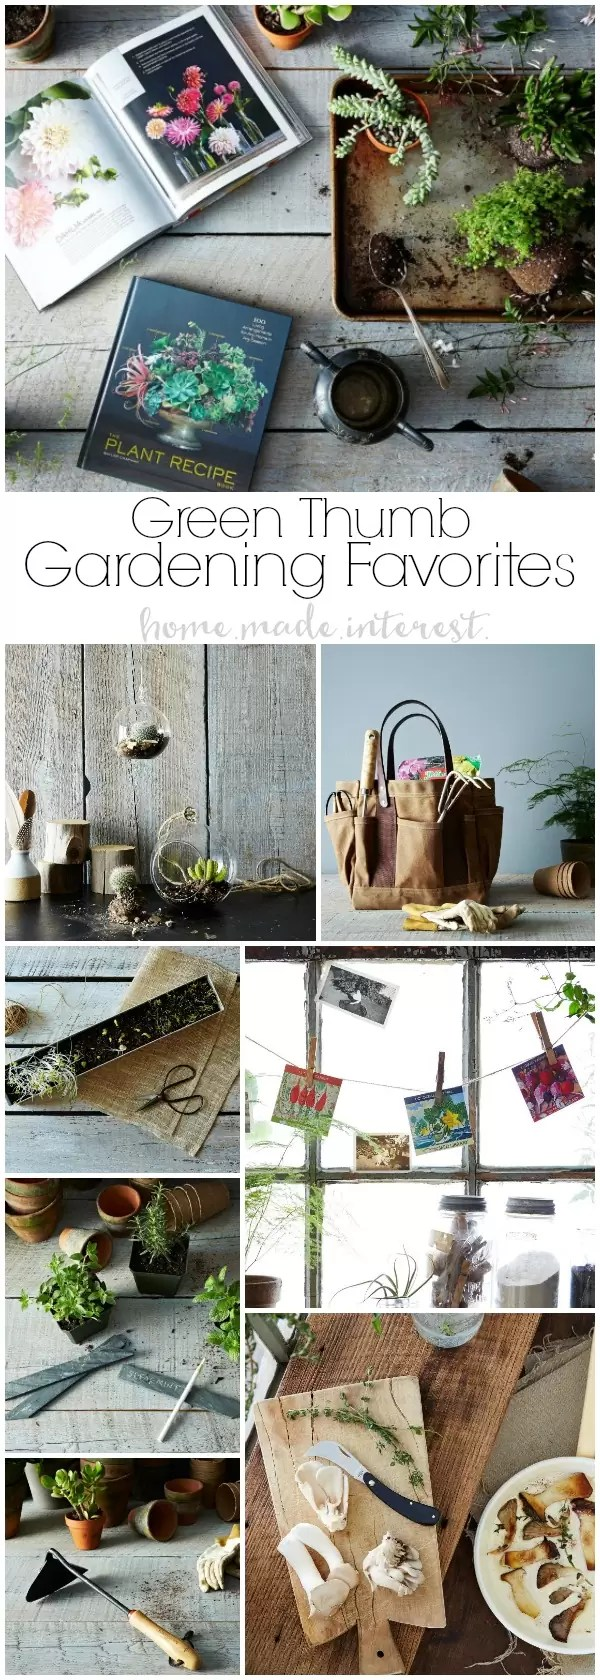 I've made a list of some of my favorite gardener gifts for all of those people I know who have a green thumb. Gardeners are going to love all of these fun, beautiful, and interesting gardening tools and gardening decorations.Great gifts ideas for mom on Mother's day or dad on Father's day too.